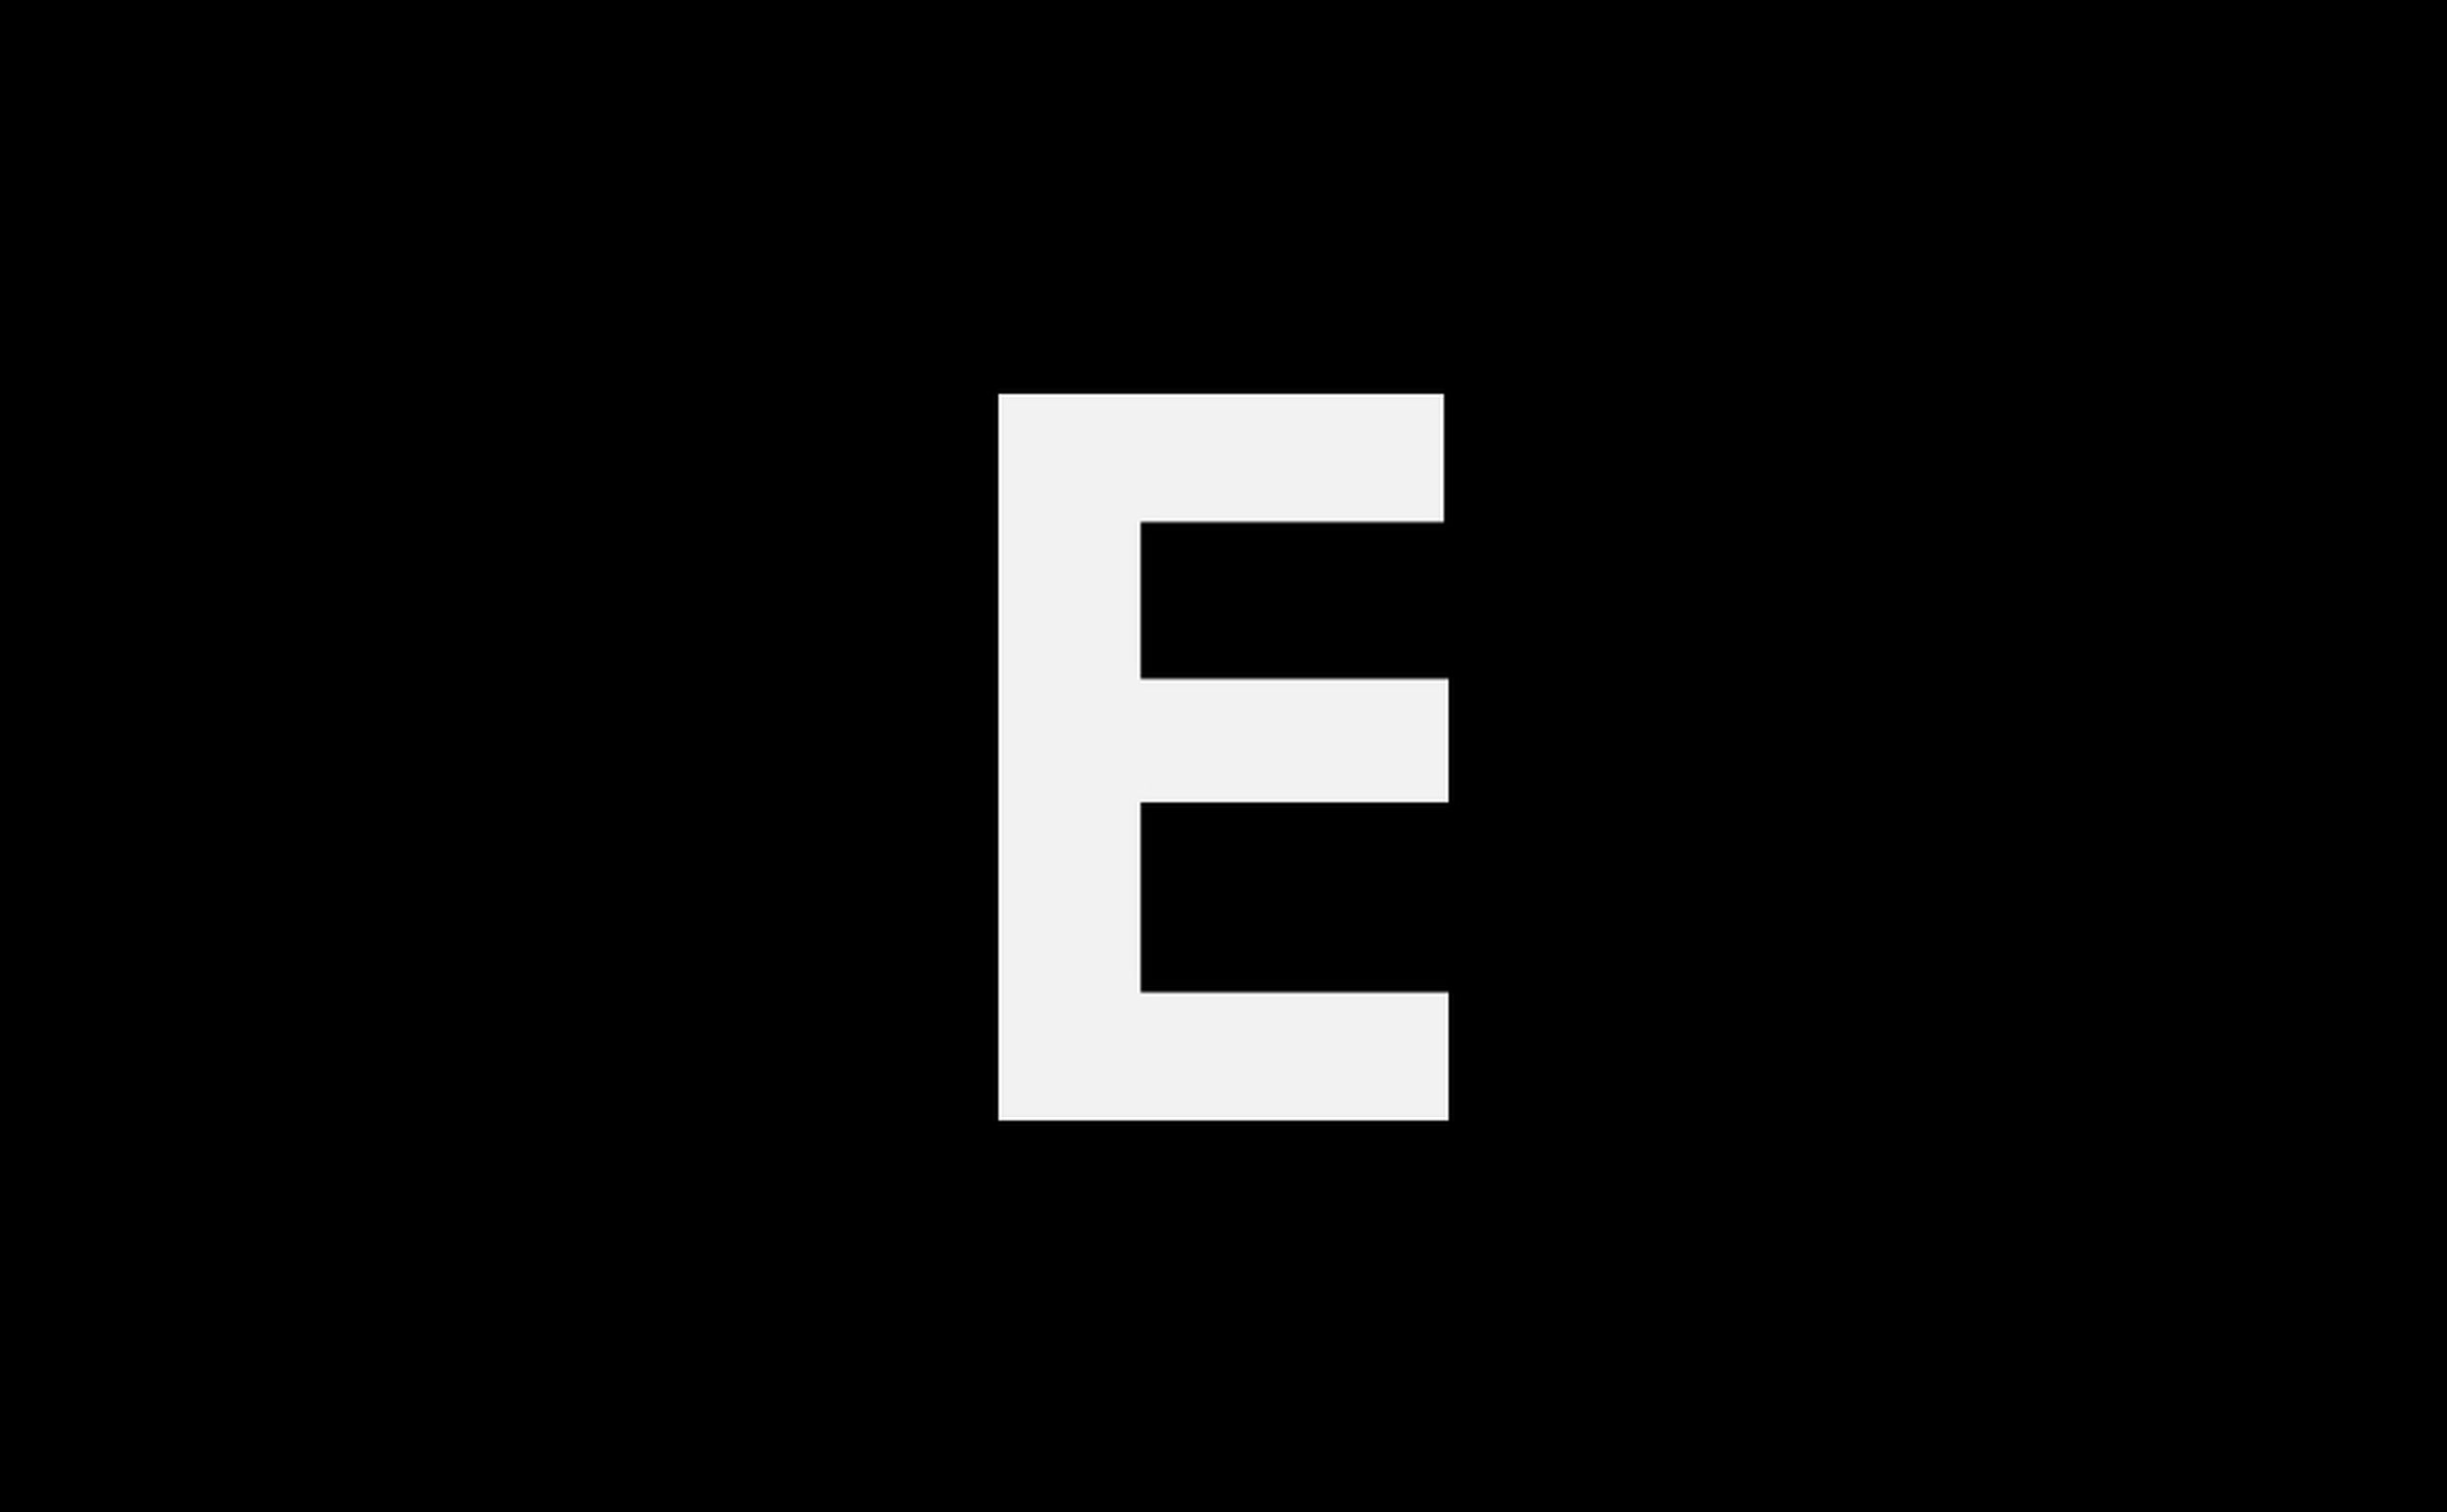 sunset, sky, silhouette, orange color, real people, domestic animals, domestic, pets, one animal, dog, mammal, beauty in nature, animal, canine, lifestyles, animal themes, scenics - nature, vertebrate, full length, one person, pet owner